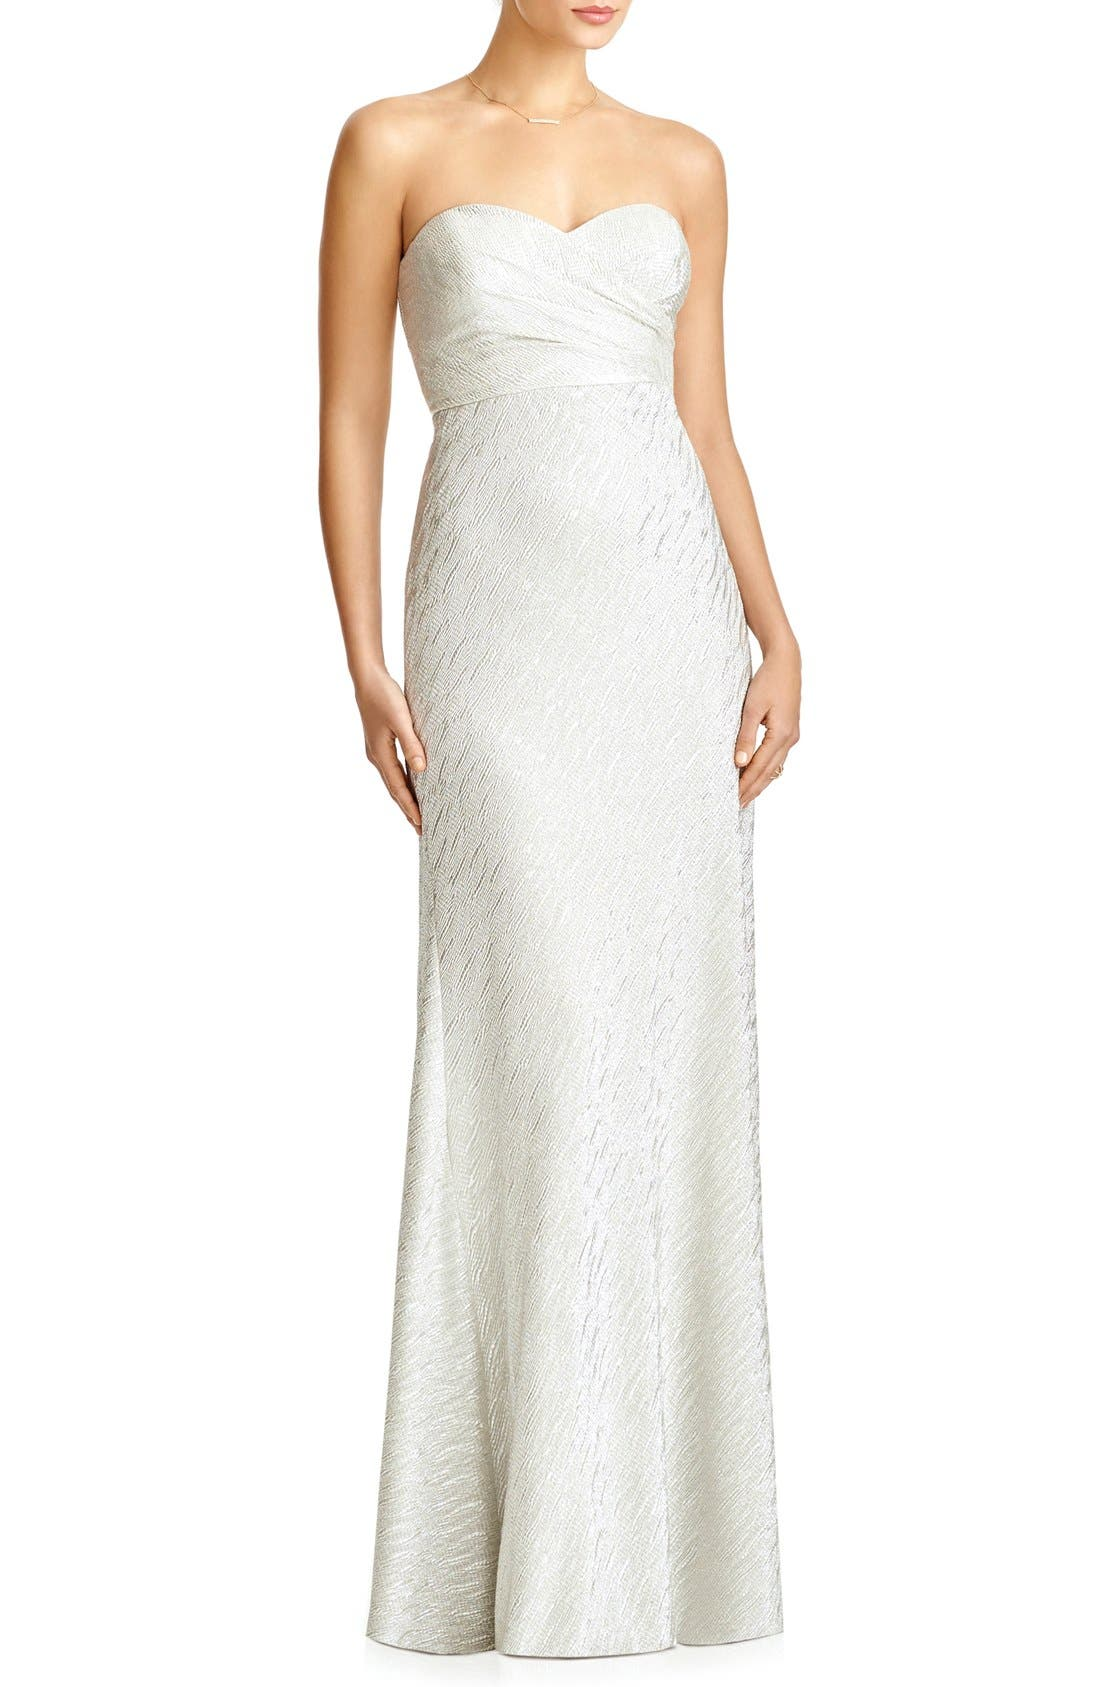 JY JENNY YOO 'Soho' Metallic Strapless Empire Waist Gown, Main, color, CHAMPAGNE SILVER